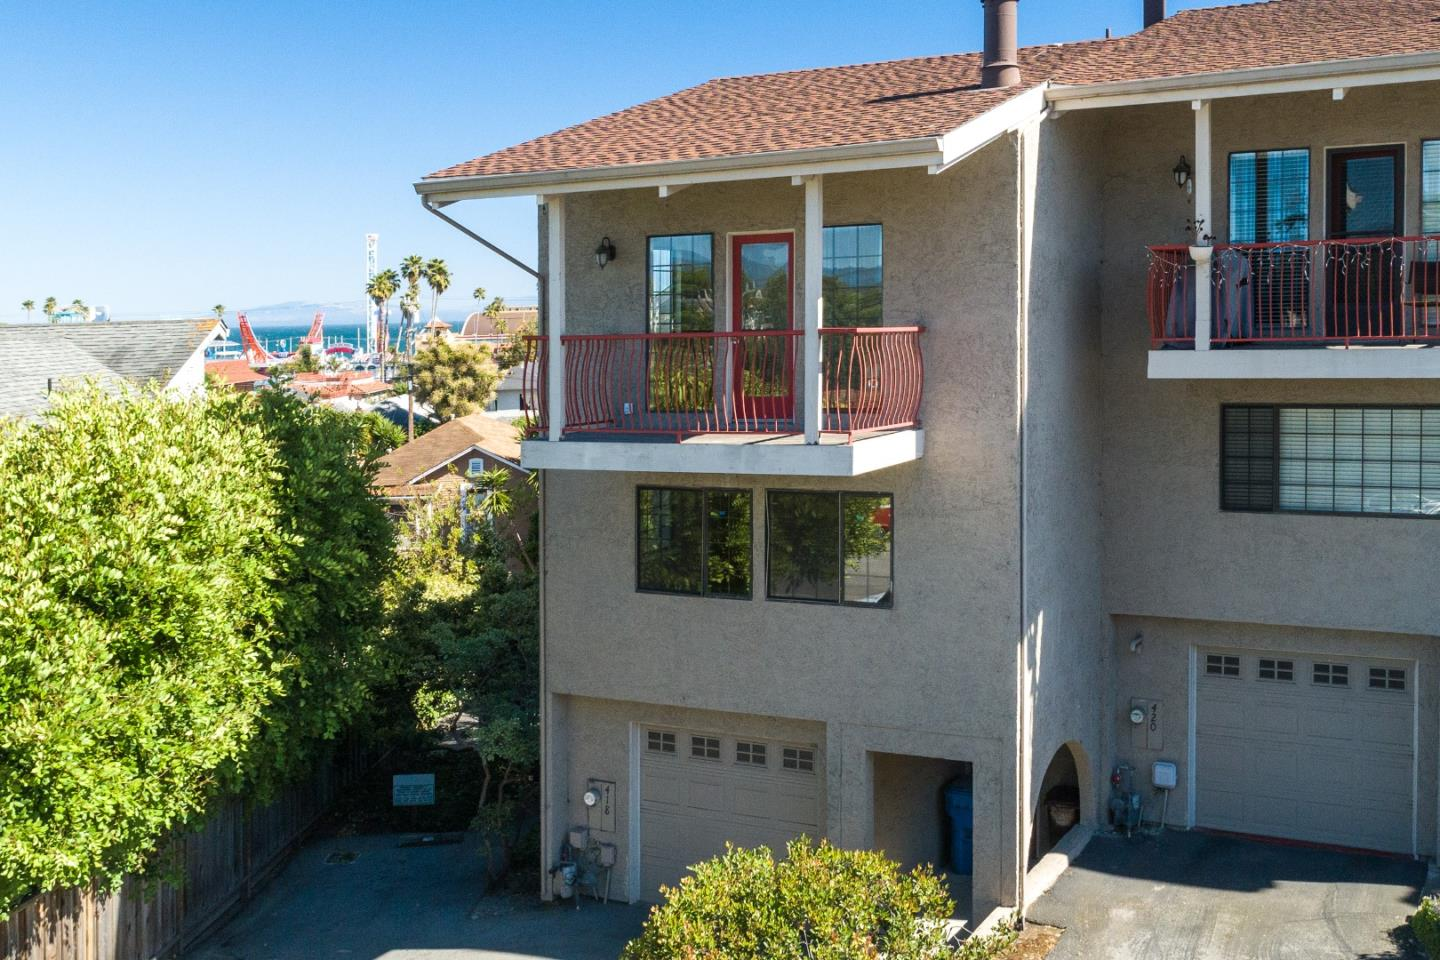 Sitting atop the highly sought-after Beach Hill Neighborhood, this 3 story townhome is just a few blocks from the world renown Santa Cruz Beach Boardwalk and Santa Cruz Municipal Wharf. It is also less than 4 miles to UC Santa Cruz and is adjacent to the San Lorenzo River and has access to the Santa Cruz Riverwalk. Living areas situated on the 3rd floor allow for full enjoyment of elevated views of the Pacific Ocean and the Boardwalk. A deck off of the family/living room lets you take in the ocean breeze and the Santa Cruz atmosphere. Schedule a showing now, this one wont last!